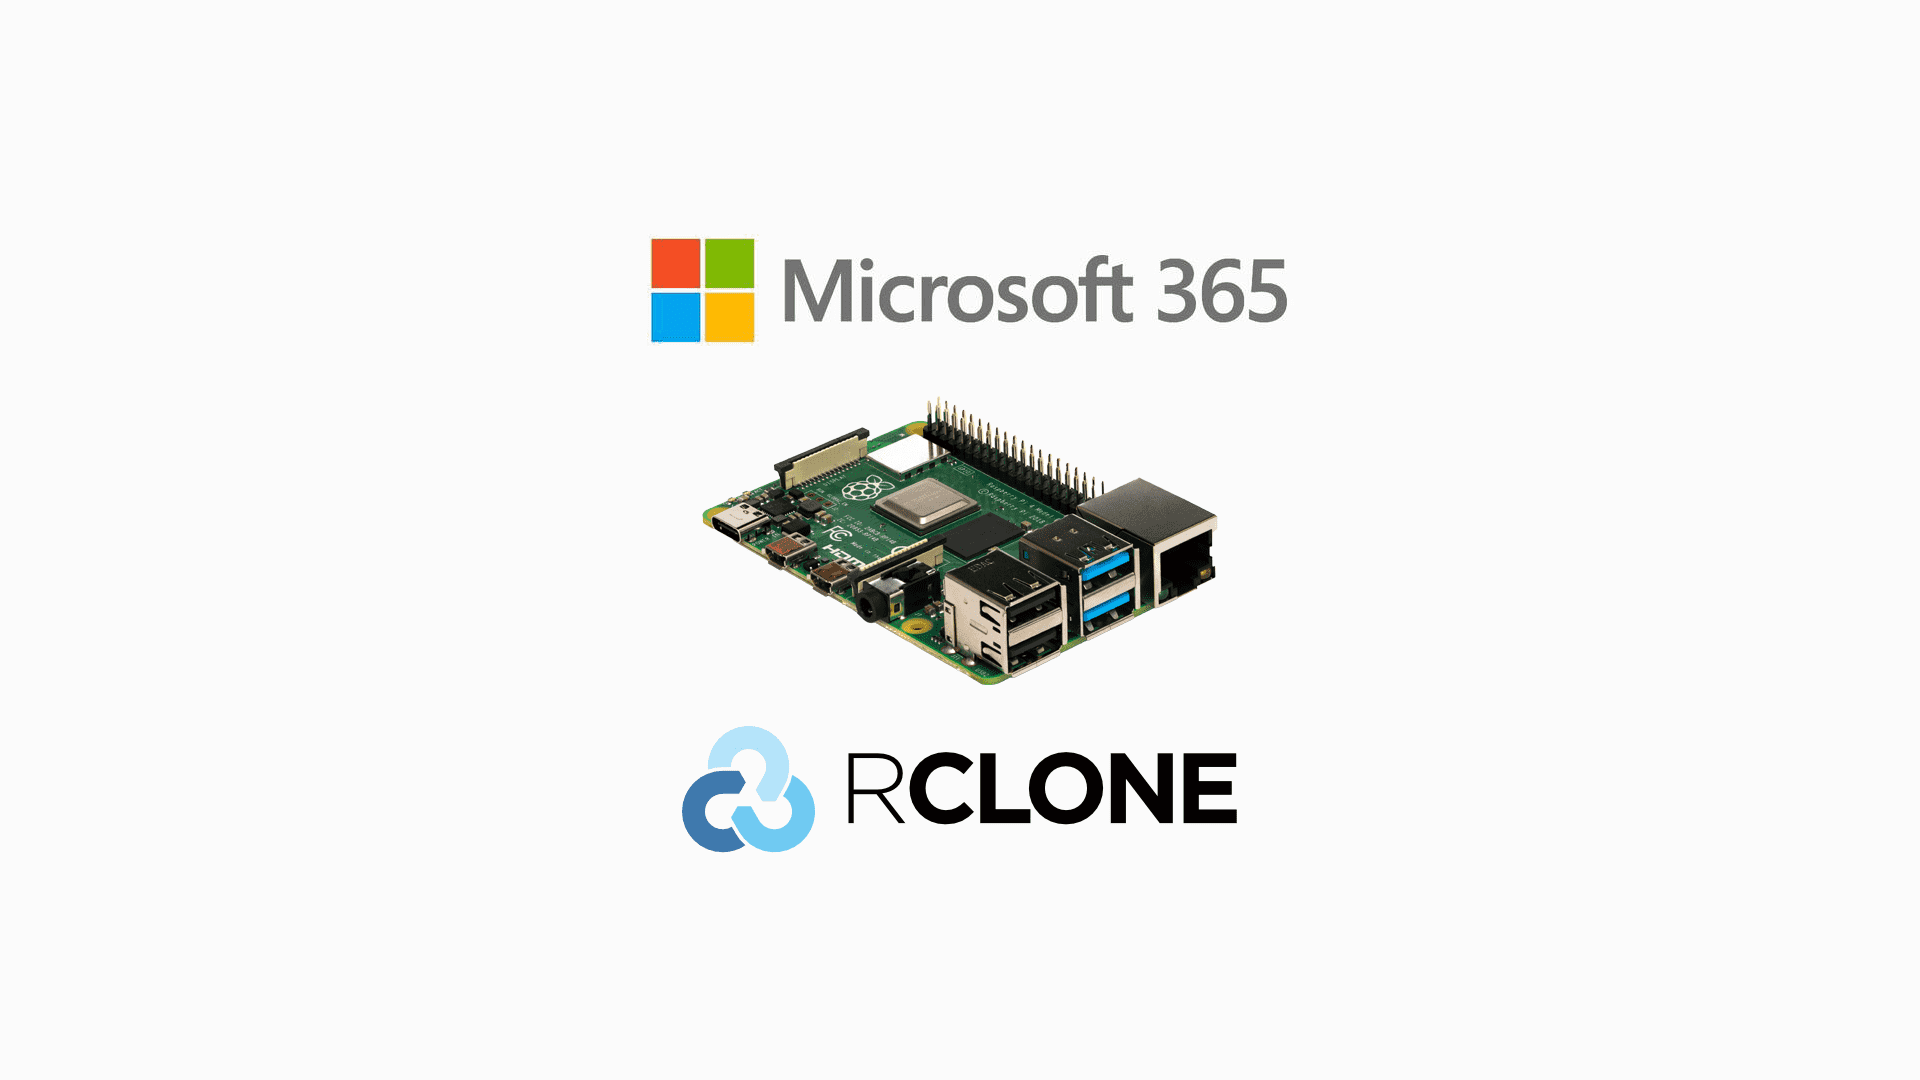 Microsoft 365 (SharePoint & OneDrive) backup for free with Raspberry Pi and Rclone